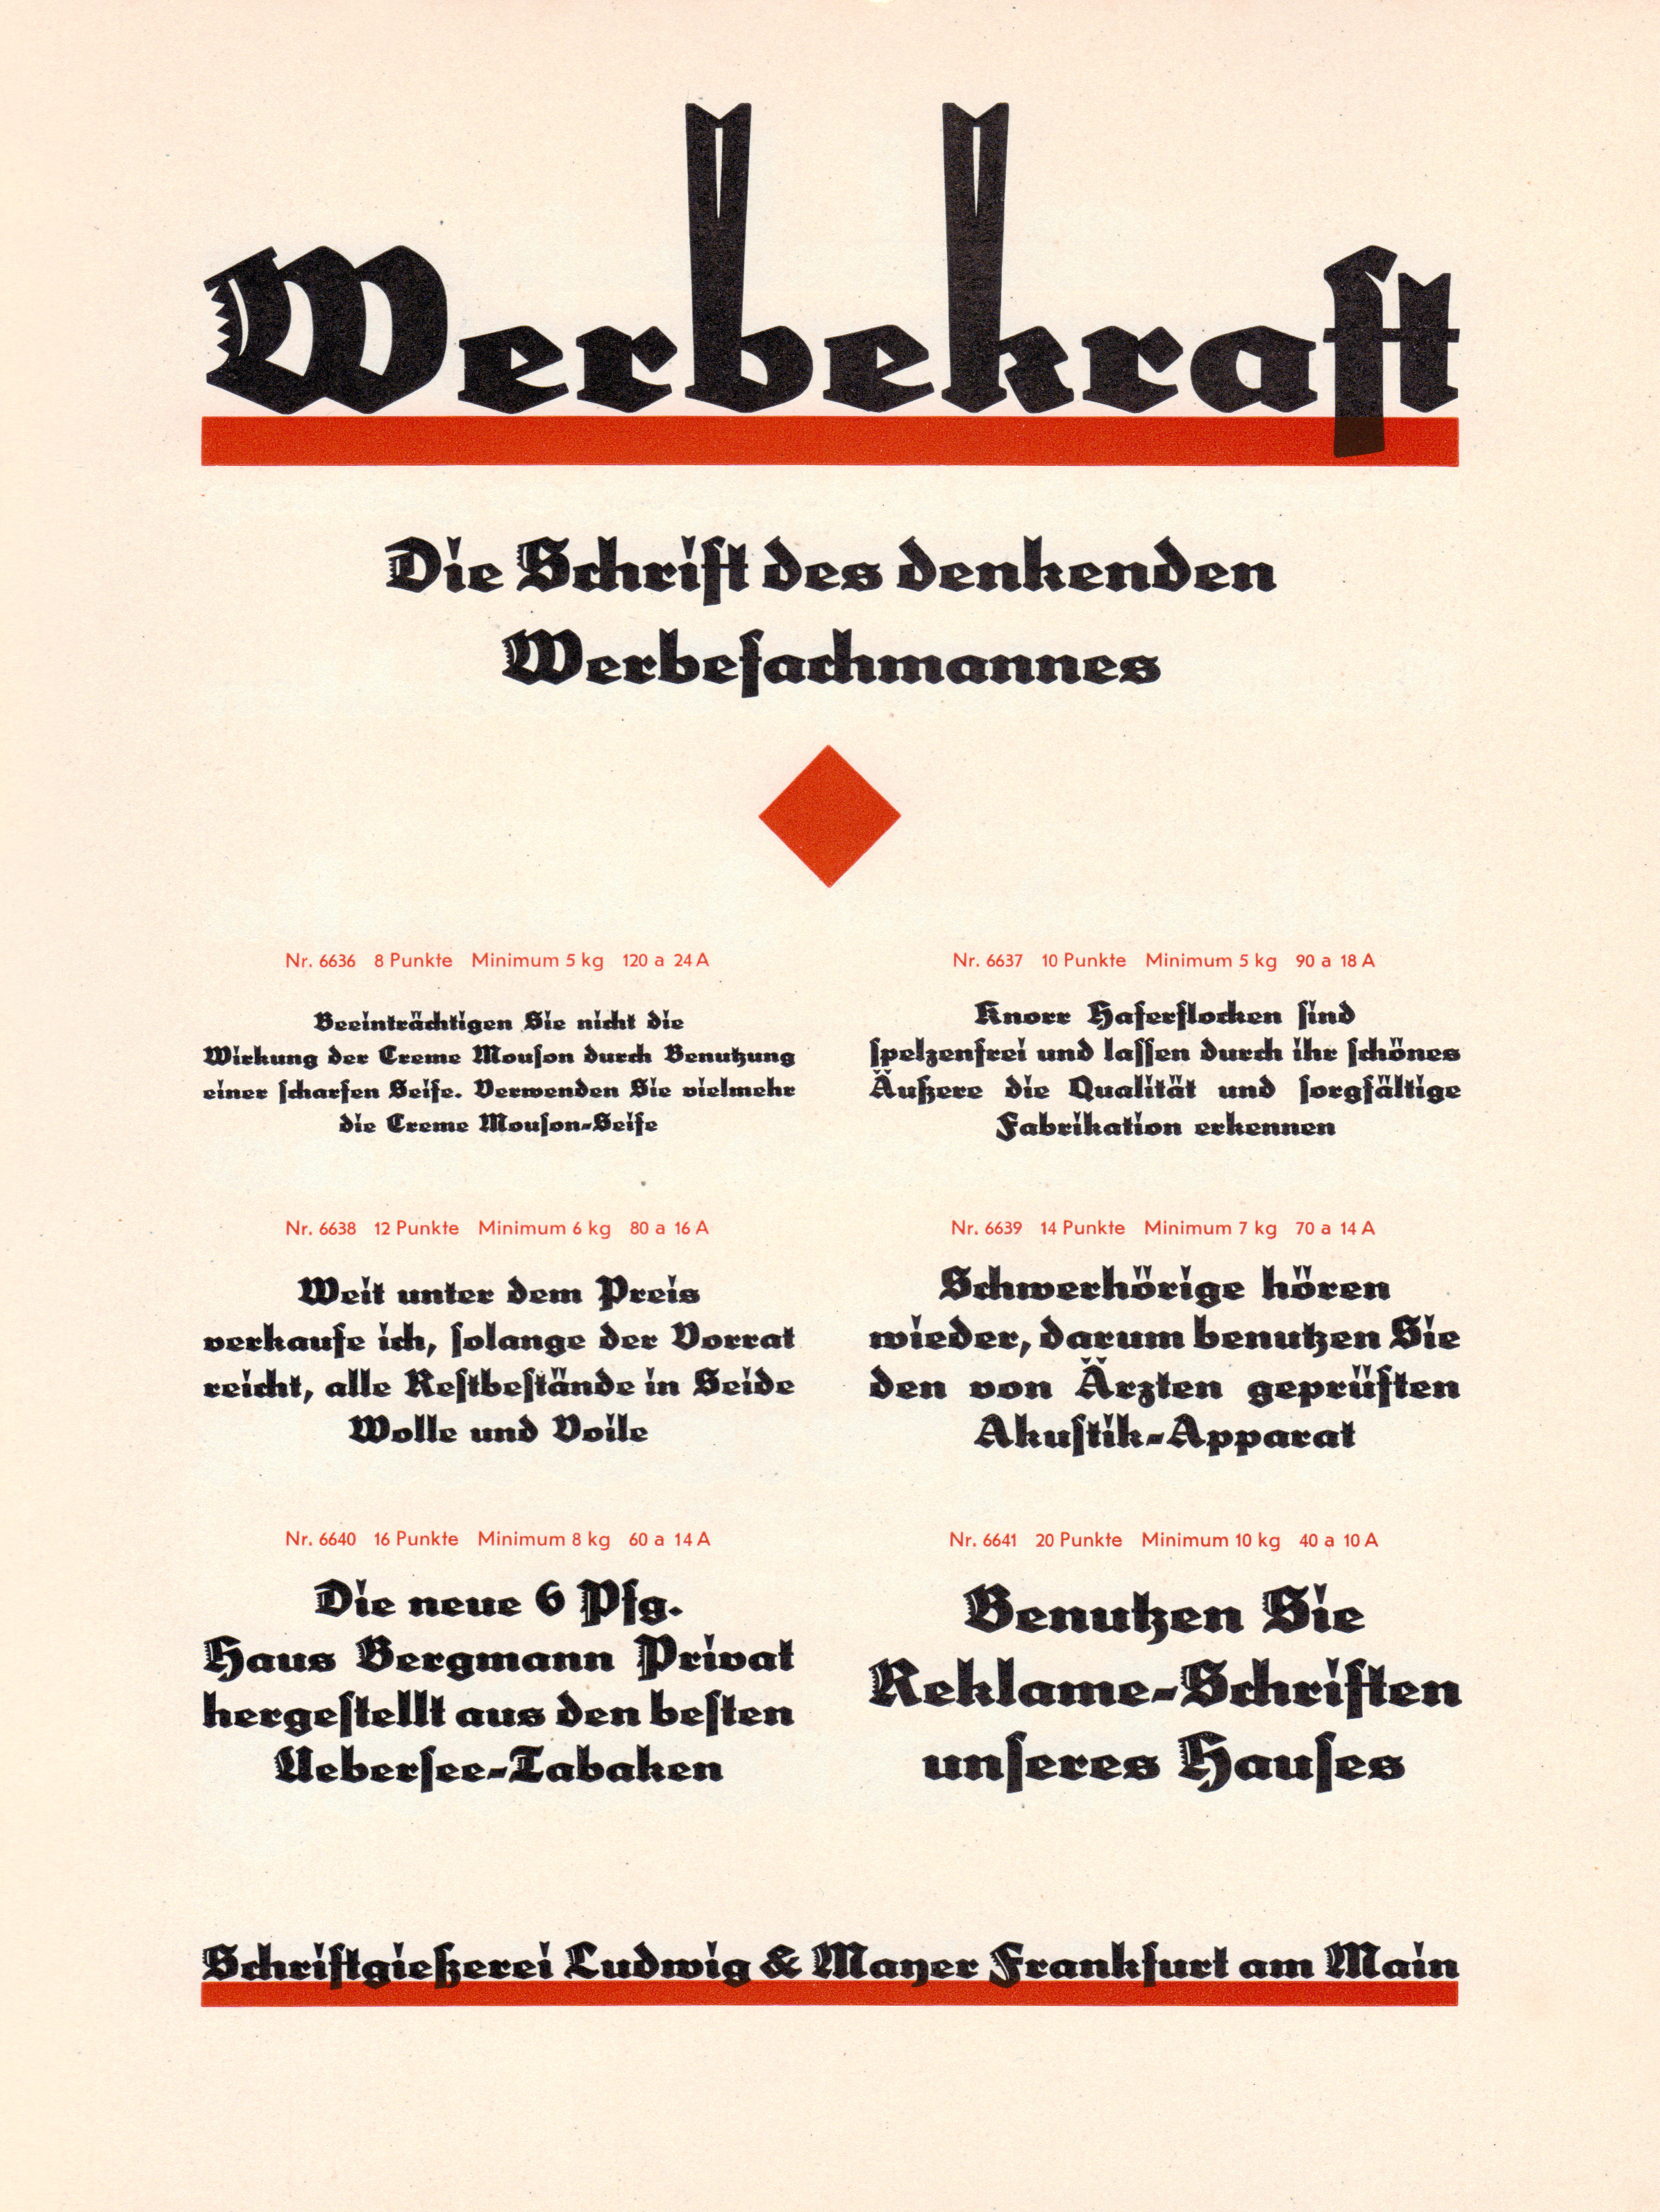 Specimen for Werbekraft